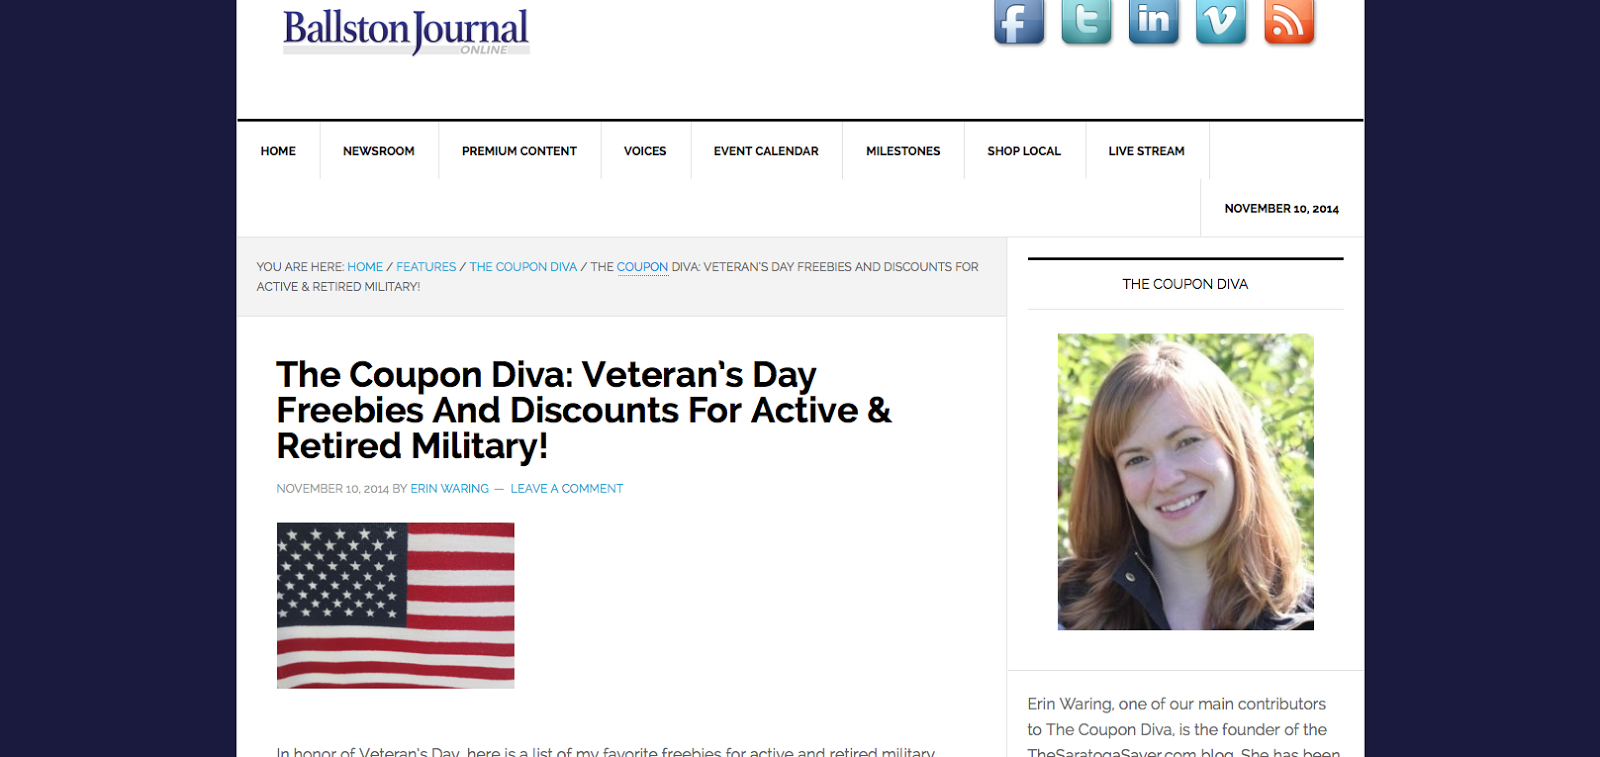 http://theballstonjournal.com/2014/11/10/coupon-diva-veterans-day-freebies-discounts-active-retired-military/